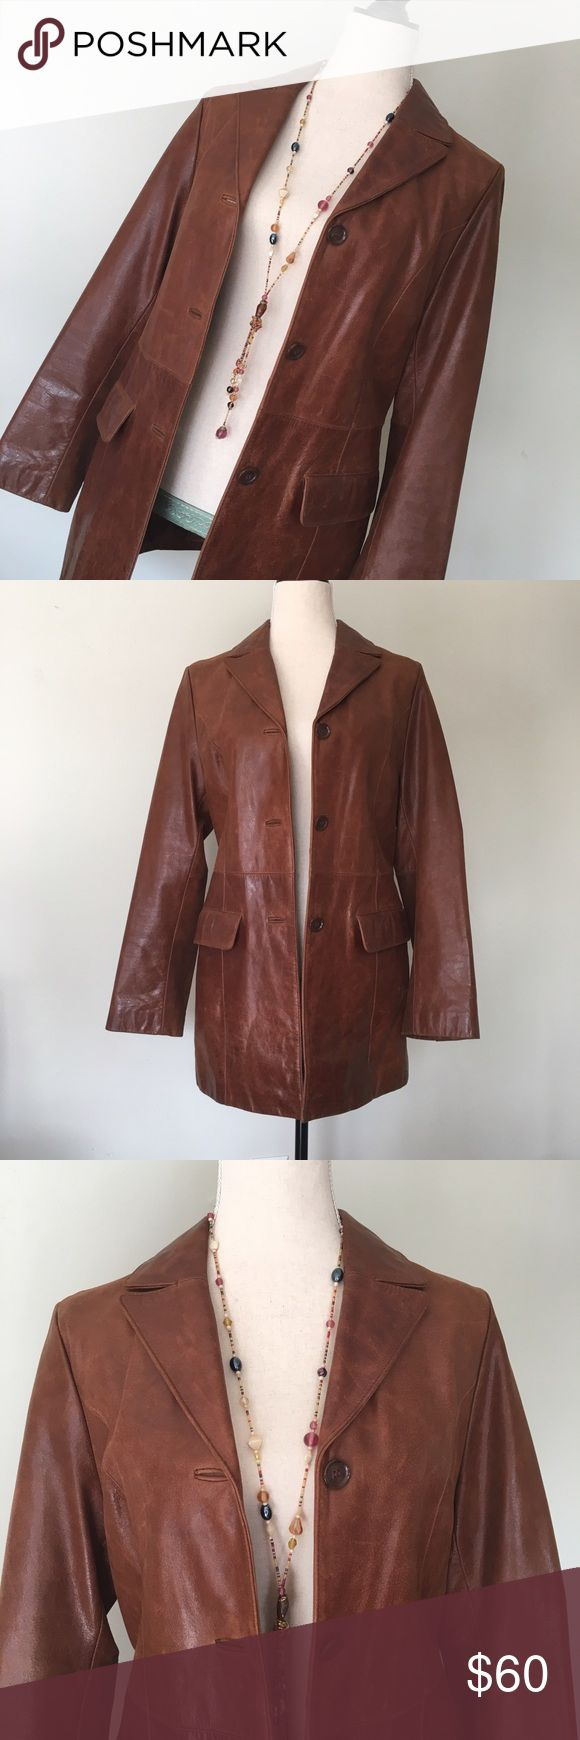 """Congac Leather Jacket Vintage like Congac color leather Jacket in excellent condition. Has 3 front button closure along with 2 front pockets. Lined interior w interior pocket. Small spots on interior lining see last pic. Shoulder to hem measures at approximately 30"""". Arm length pit to wrist is approximately 17"""". Size says small but it could fit a medium. I'd say it was a 6-8. I think it's originally a mans coat but I wore it. Very retro looking✌️ Jackets & Coats"""